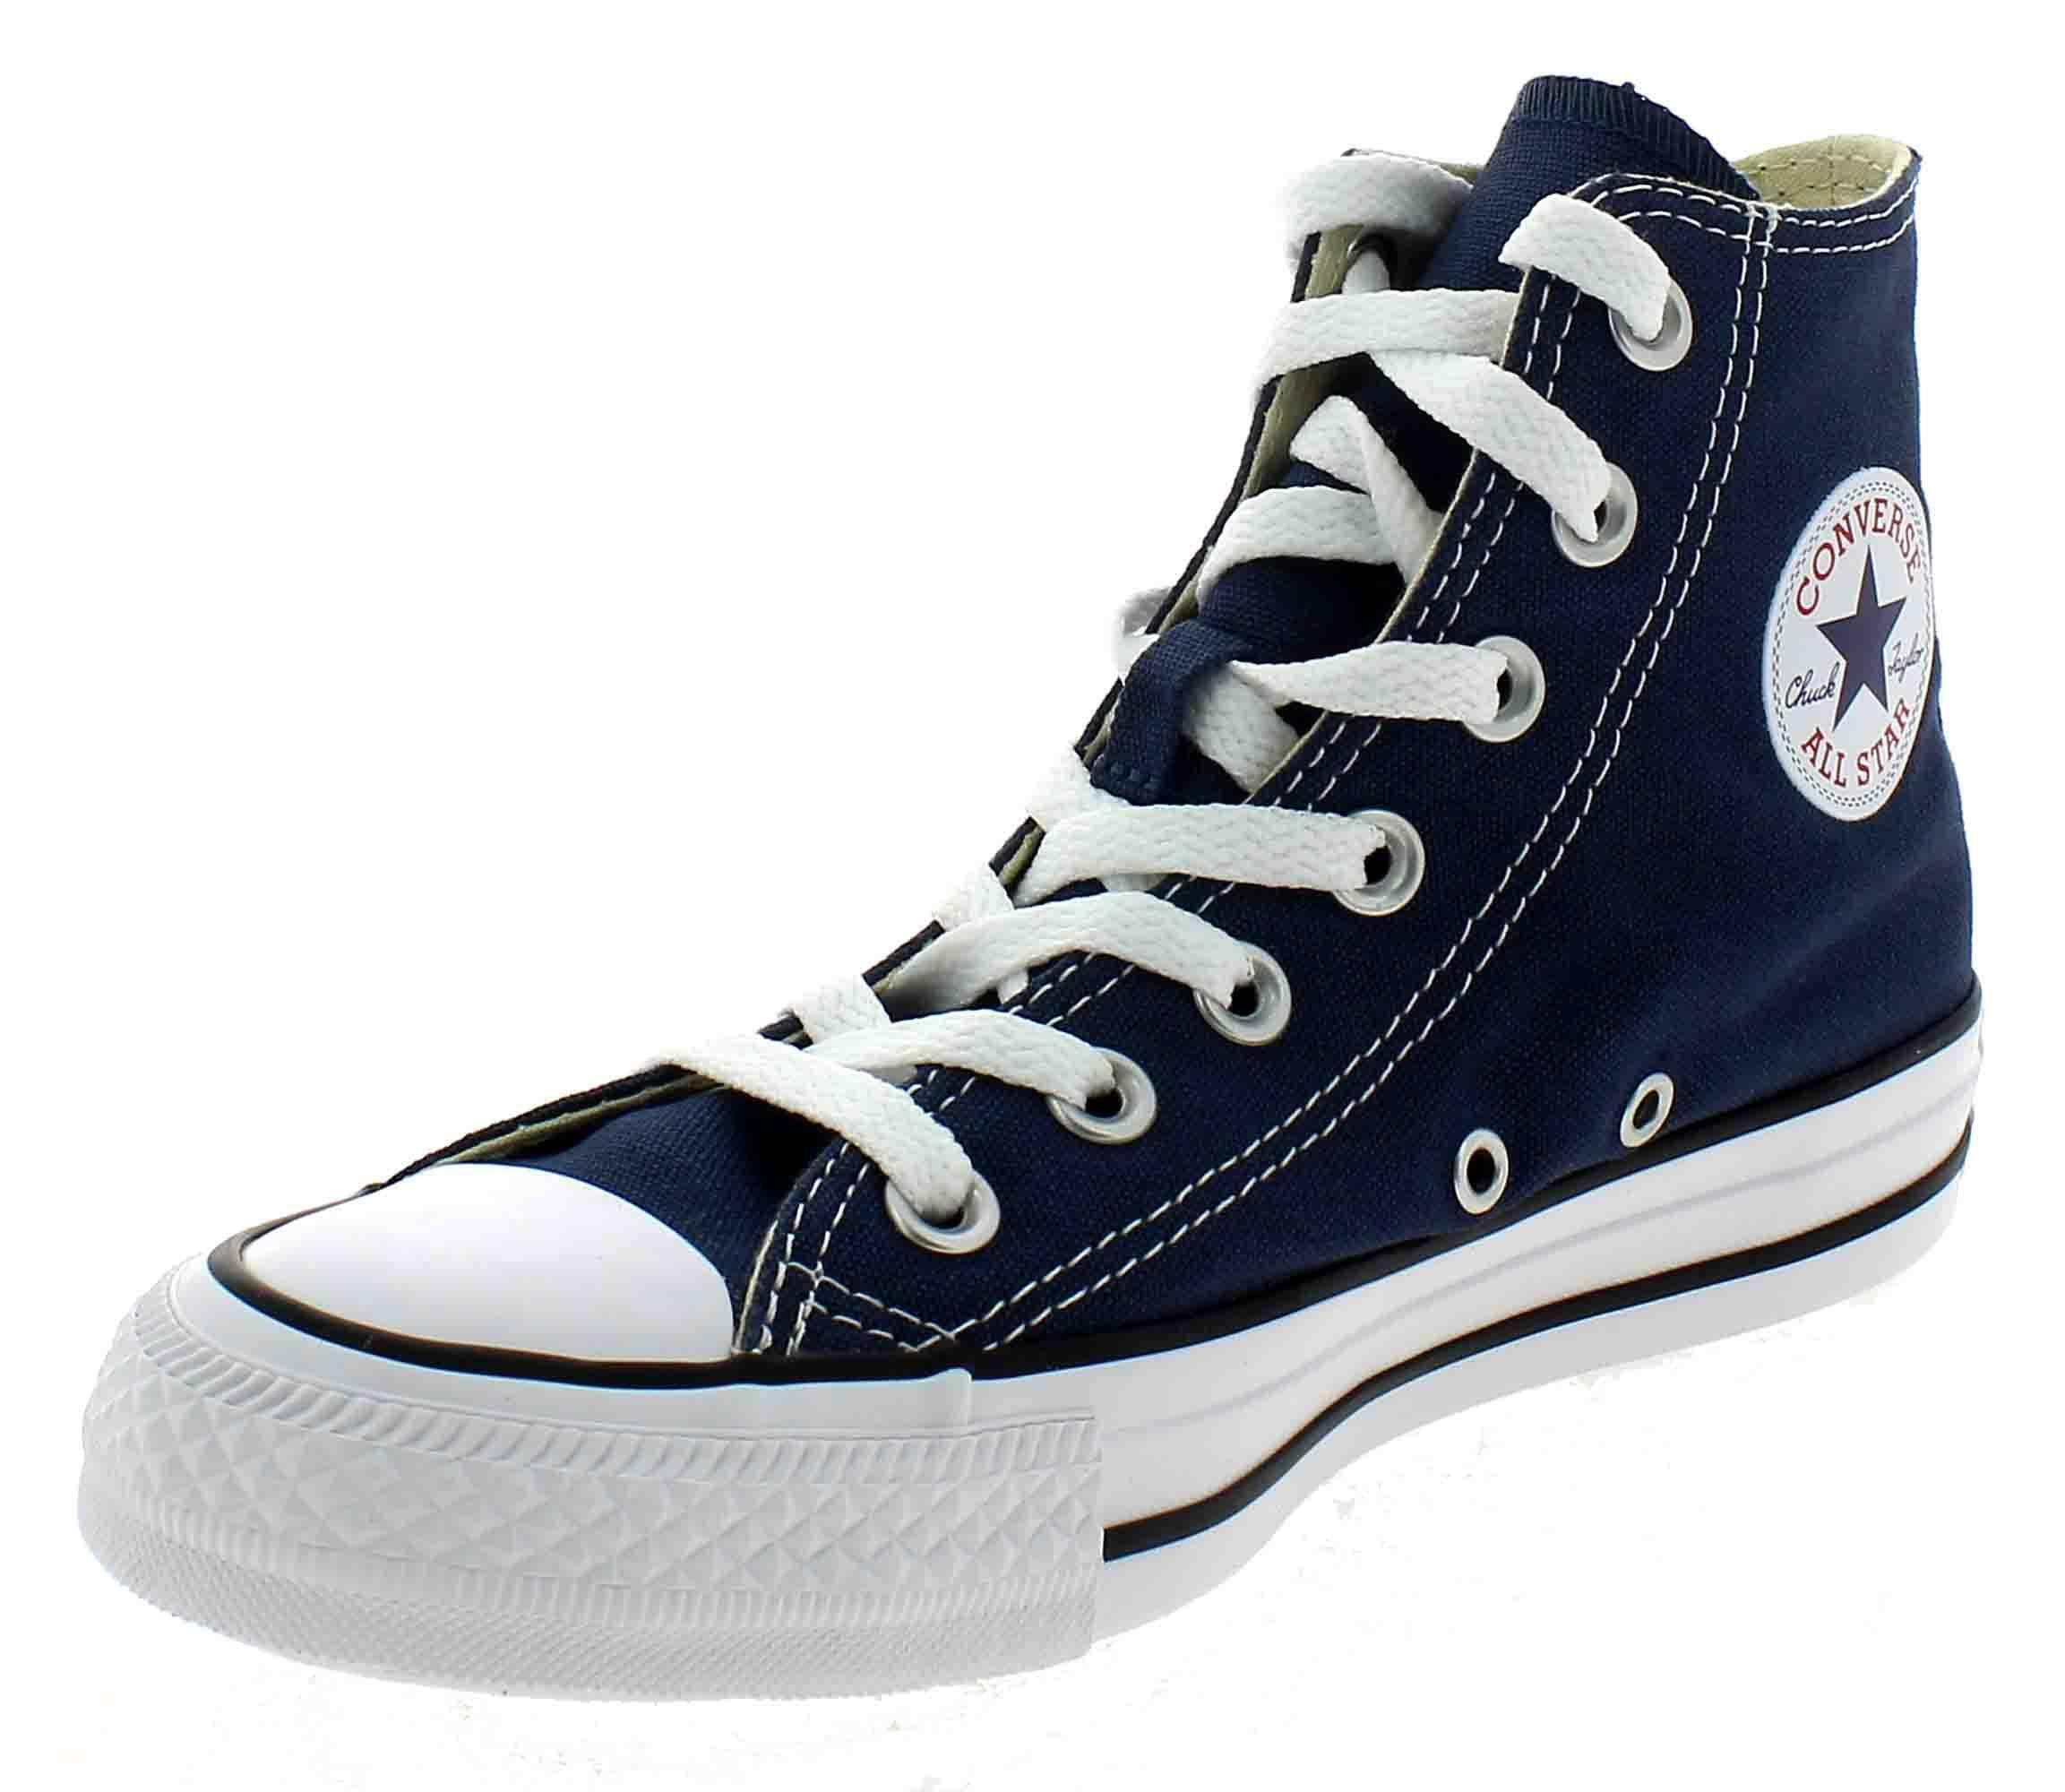 1a344a8199d0 Image is loading CONVERSE-ALL-STAR-HI-SPORT-SHOES-HIGH-BLUE-